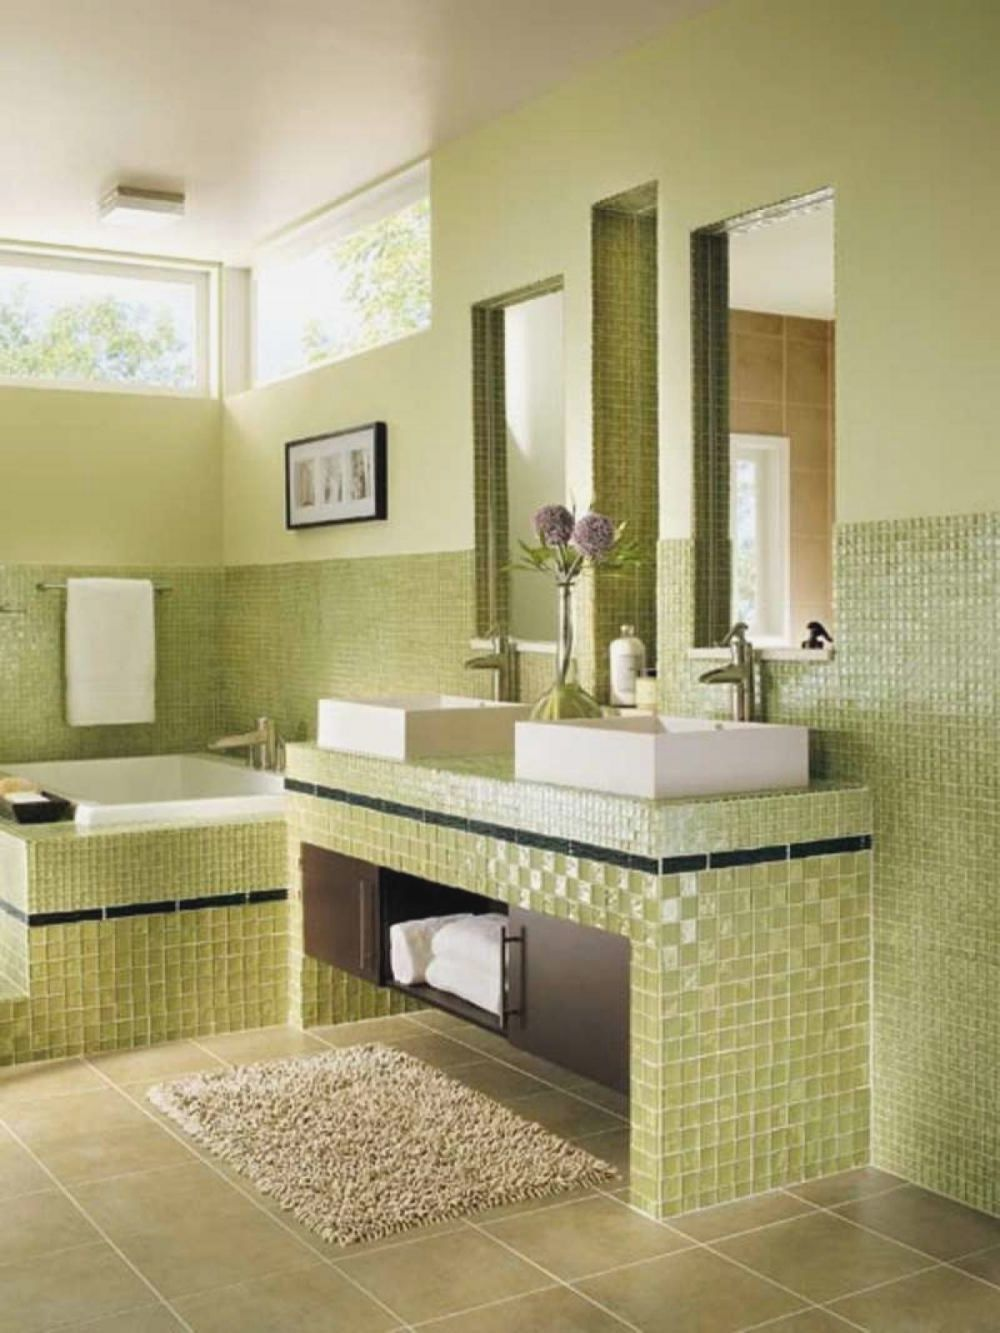 Extra kleine badezimmerideen old yellow tile bathroom ideas more picture old yellow tile bathroom